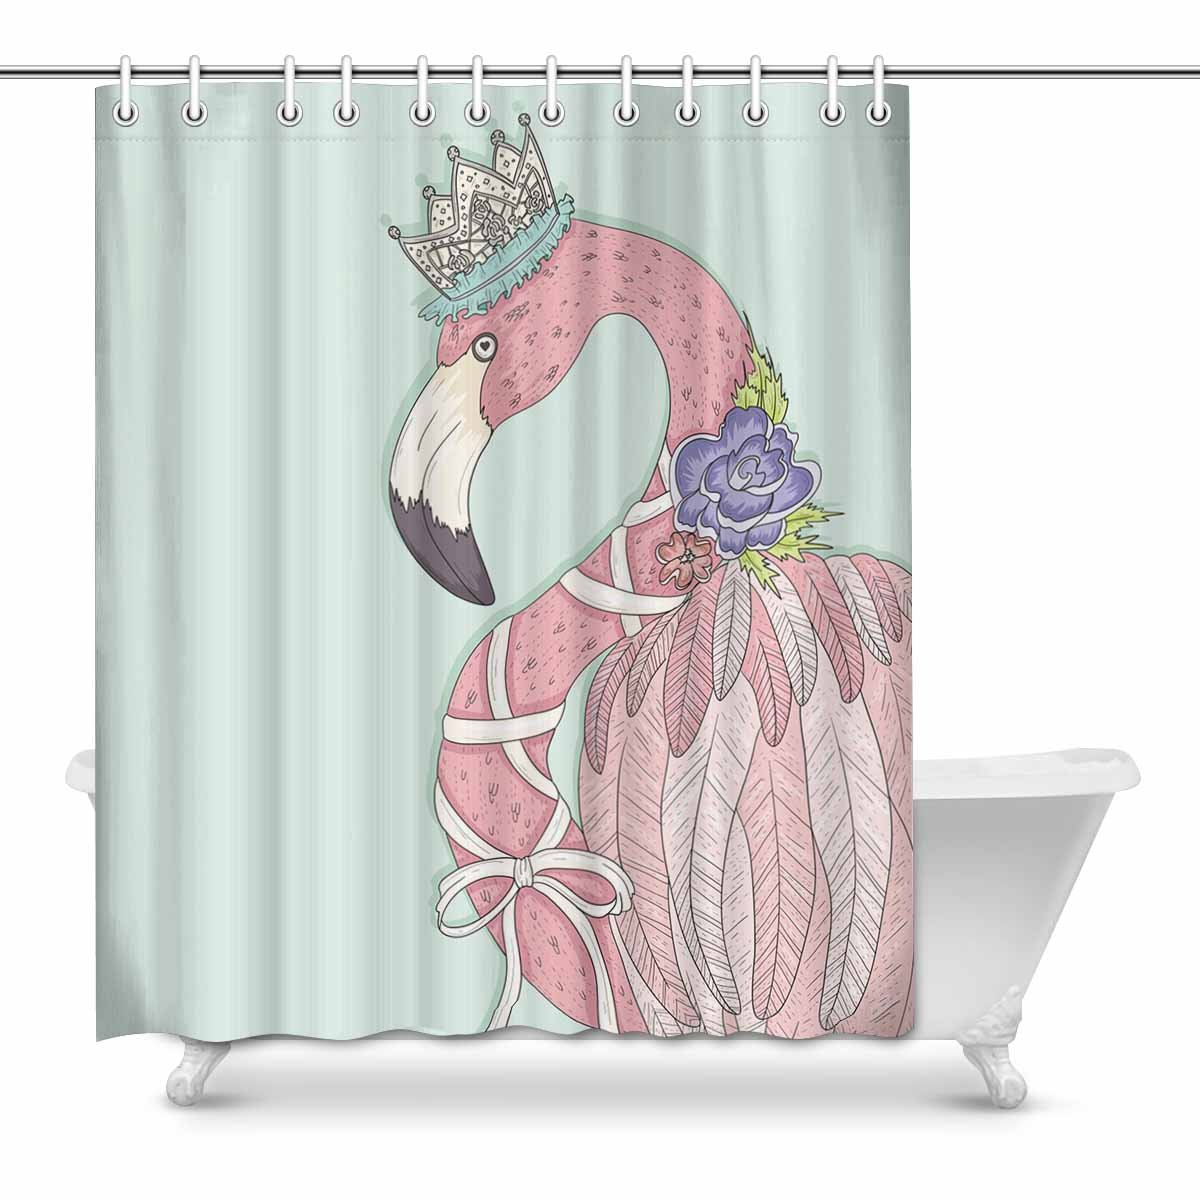 Cute Girly Shower Curtains Mkhert Cute Girly Flamingo With Flower Crown And Ribbon Decor Waterproof Polyester Bathroom Shower Curtain Bath Decorations 60x72 Inch